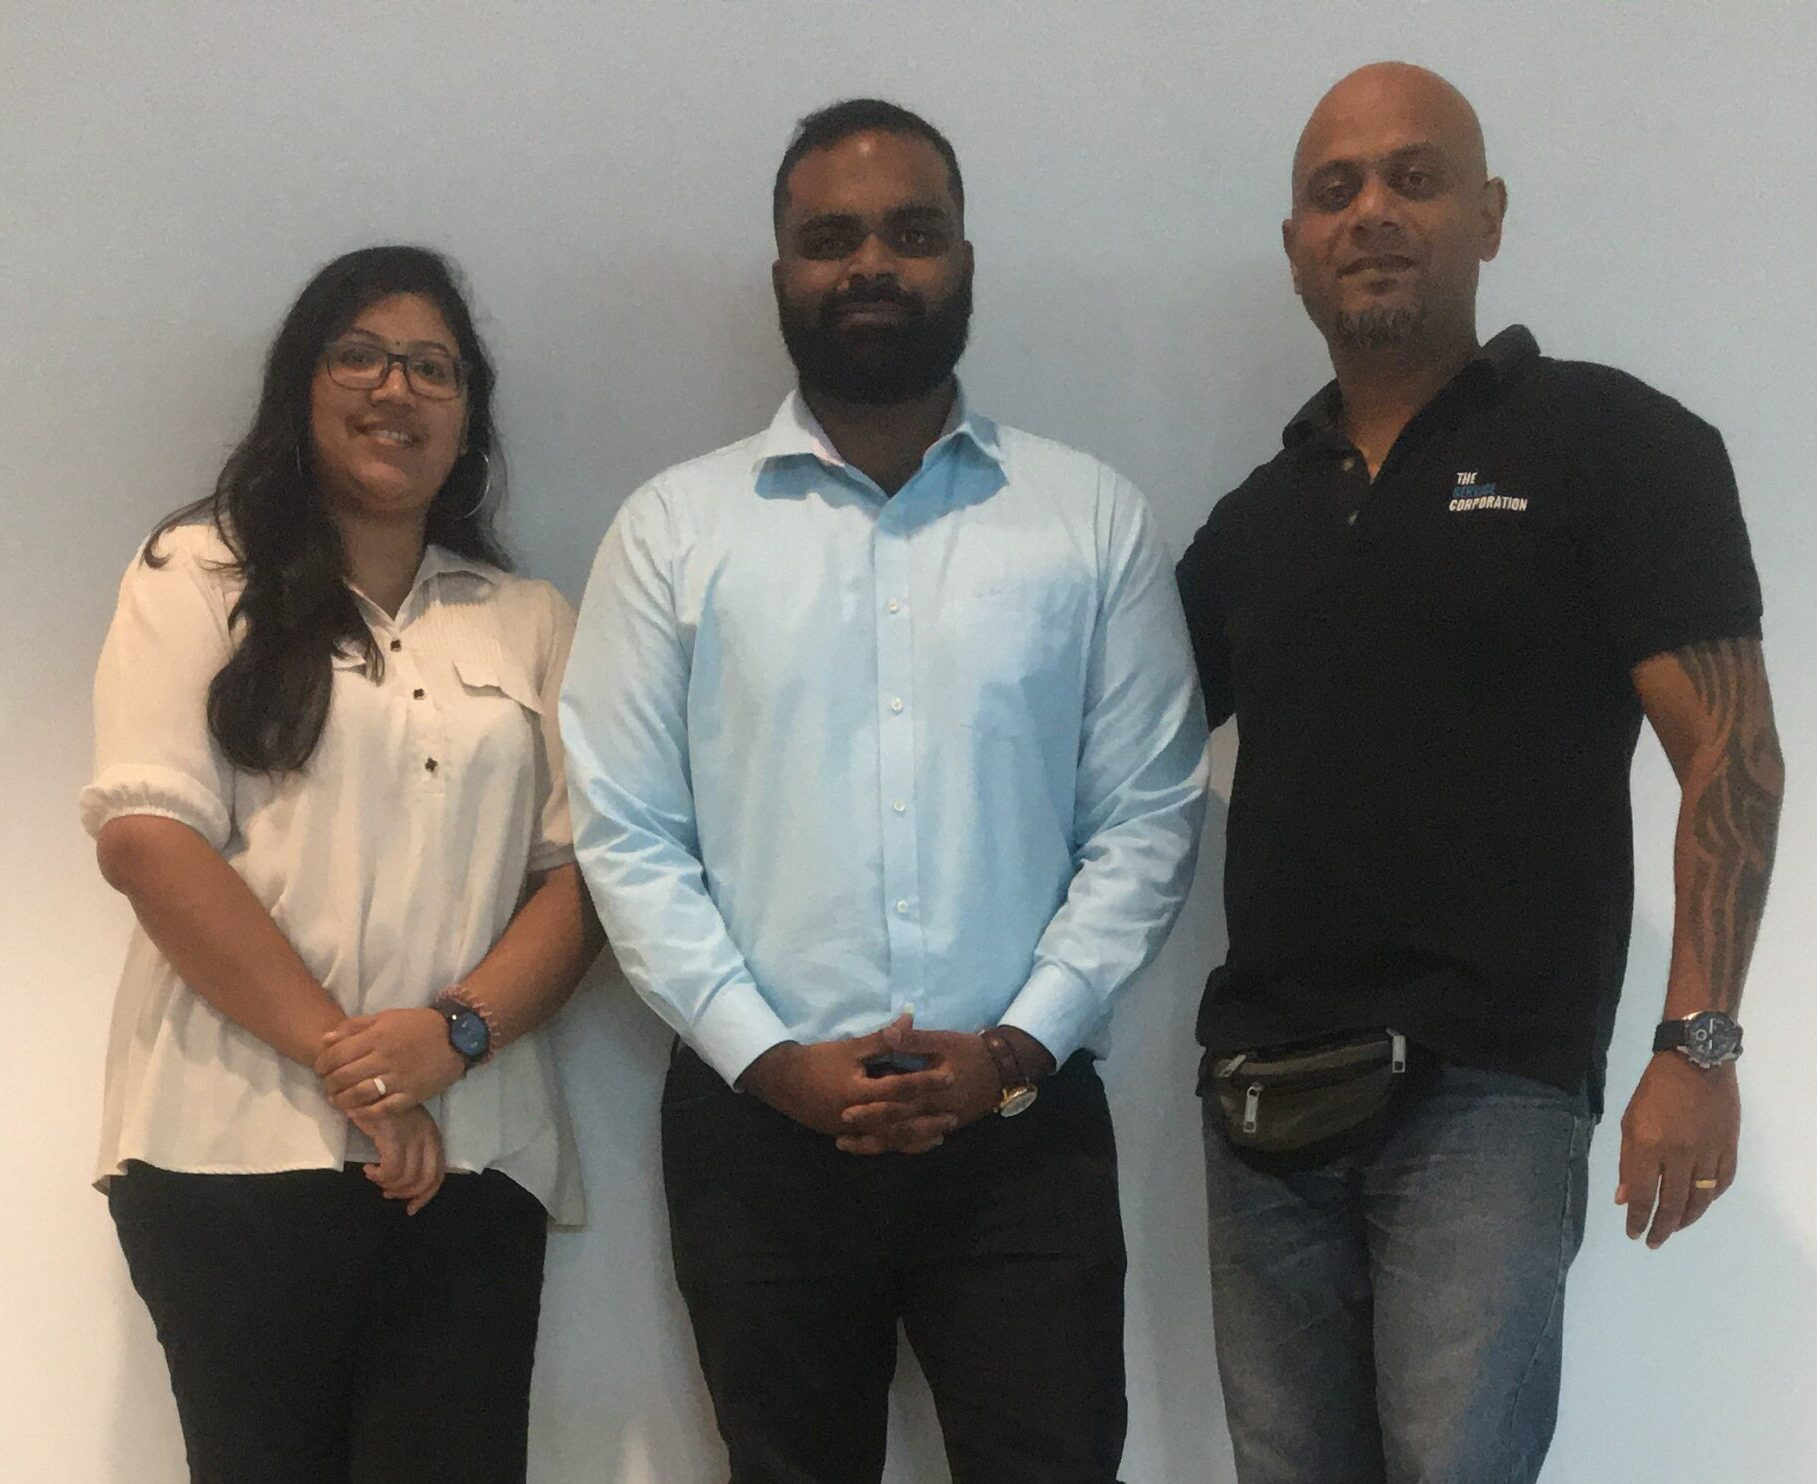 Malaysia team is expanding